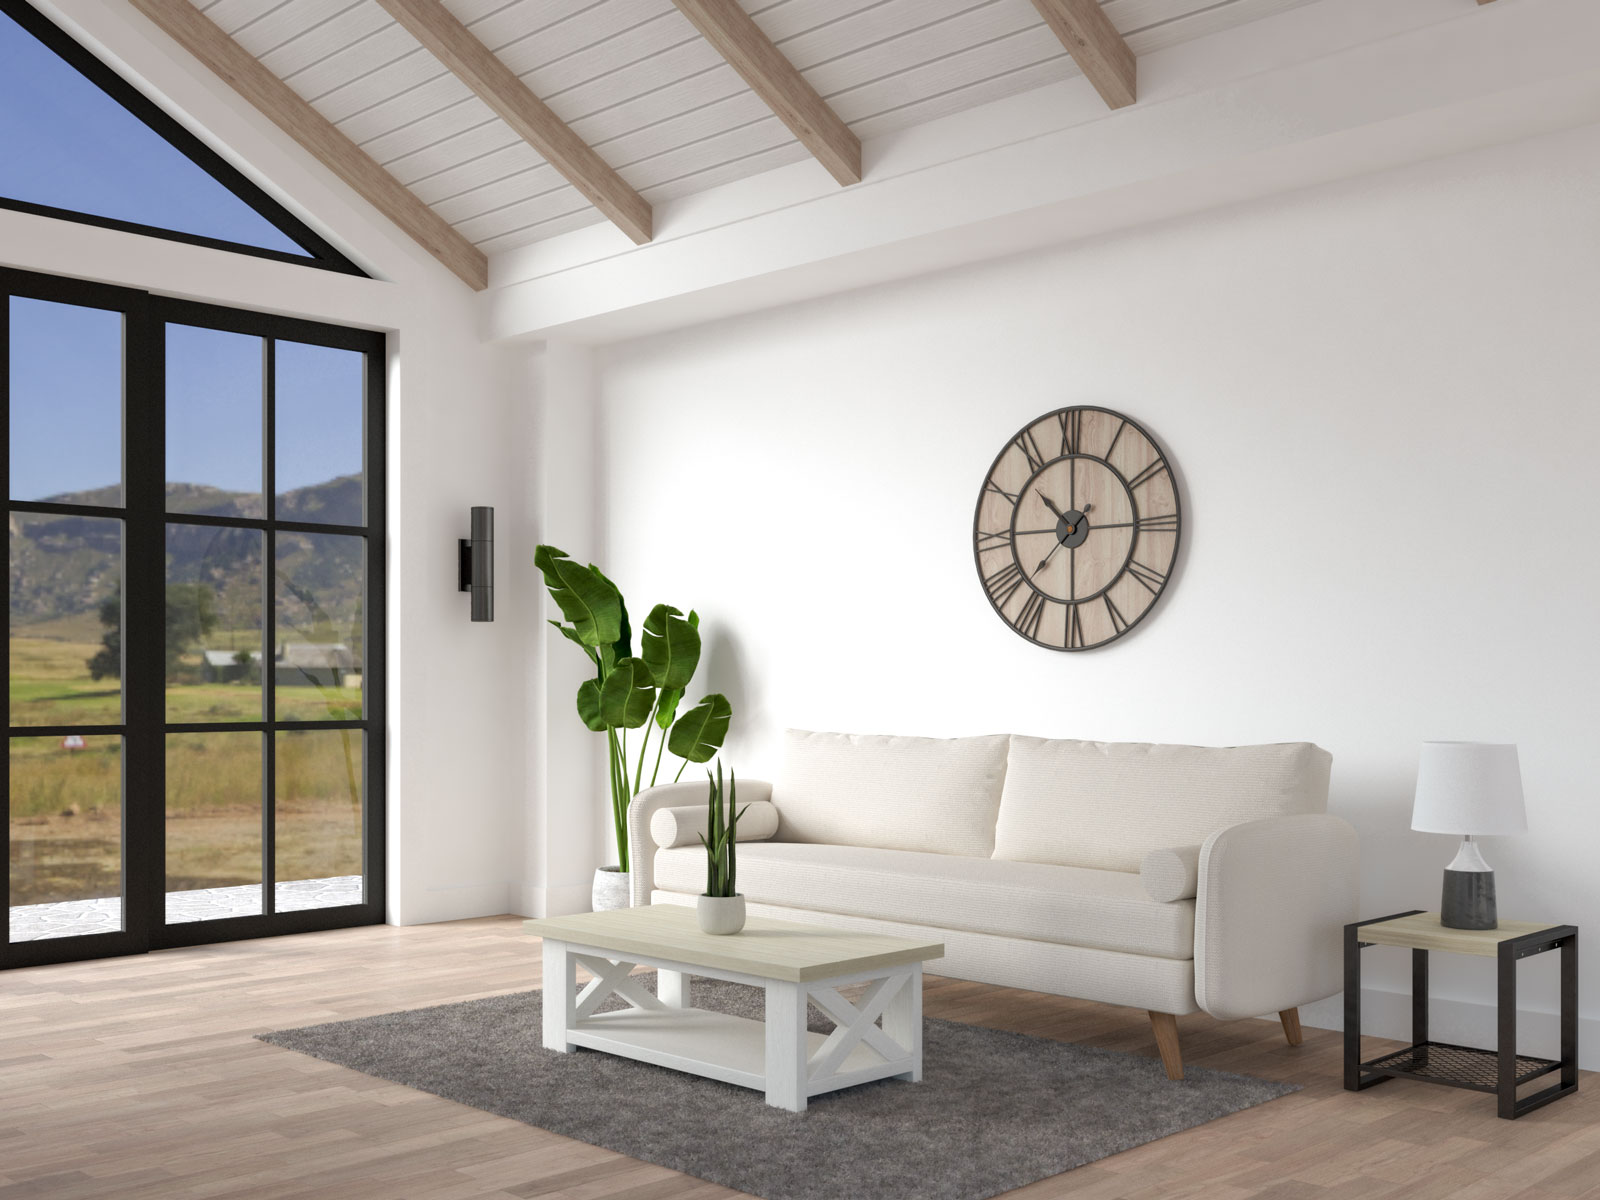 Living room with farmhouse decor and white walls